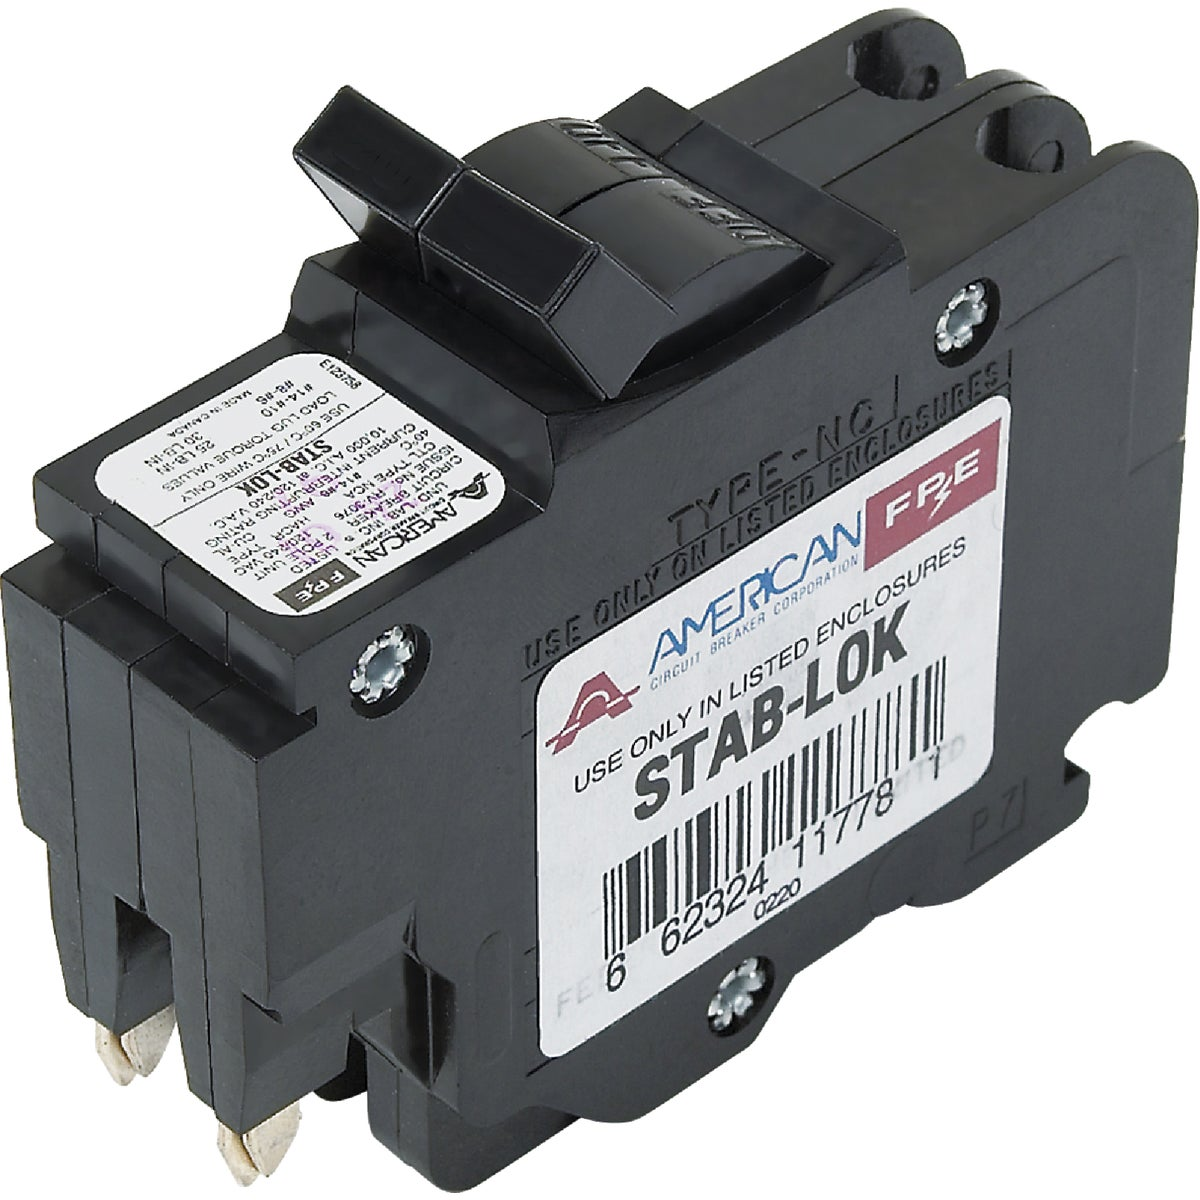 20A 2P CIRCUIT BREAKER - UBIF0220N by Connecticut Electric